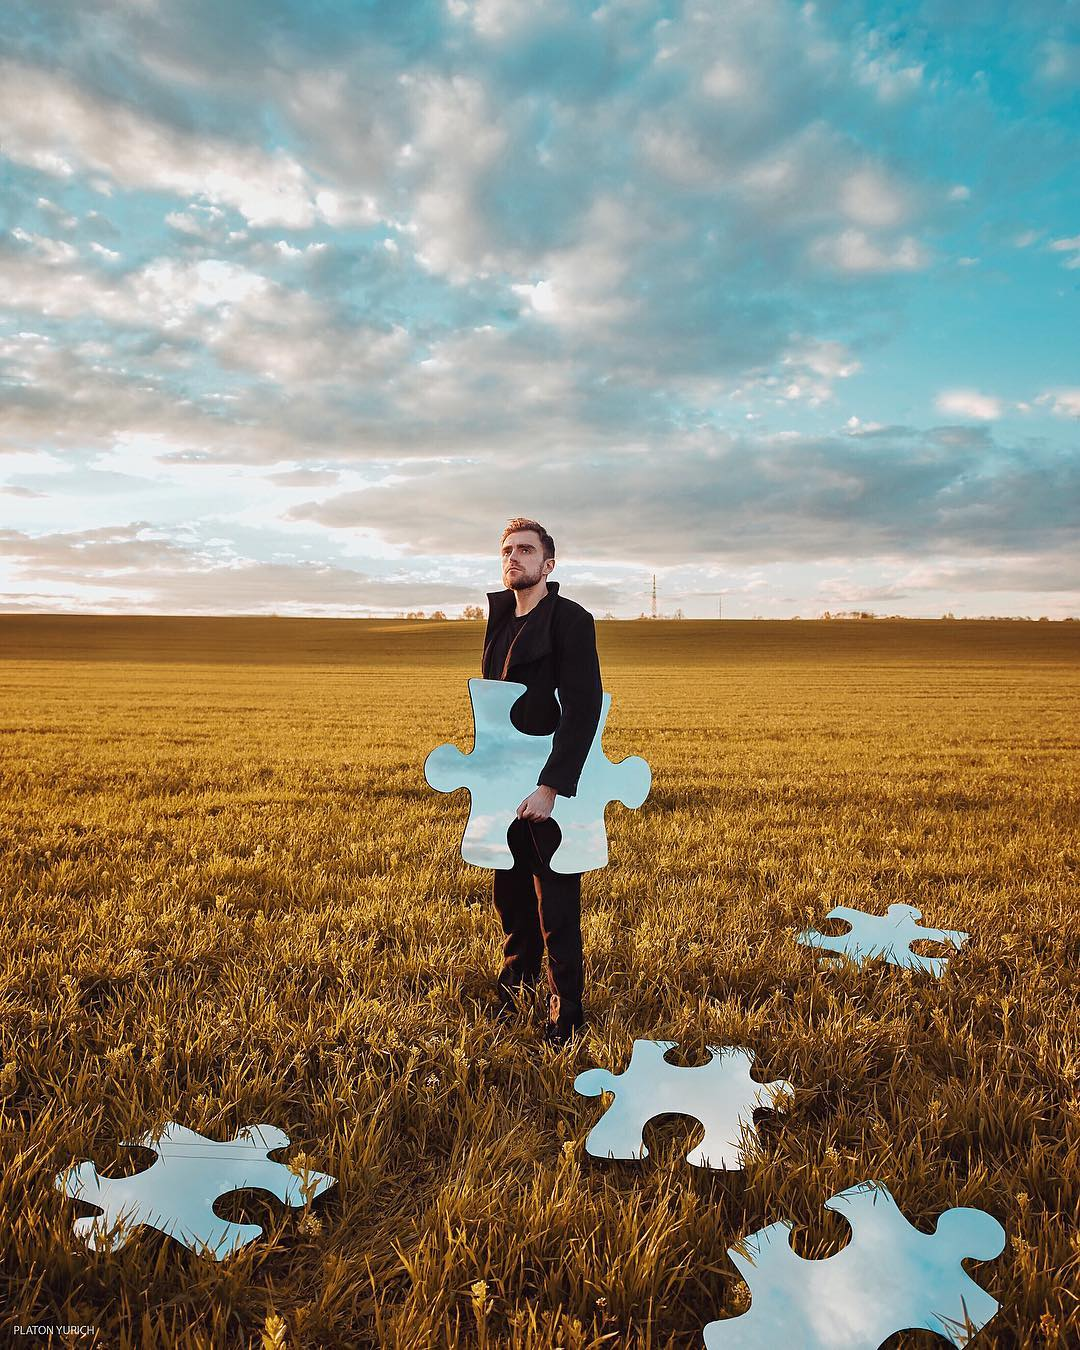 Russian Artist Platon Yurich Creates Surreal Photos Digital Art